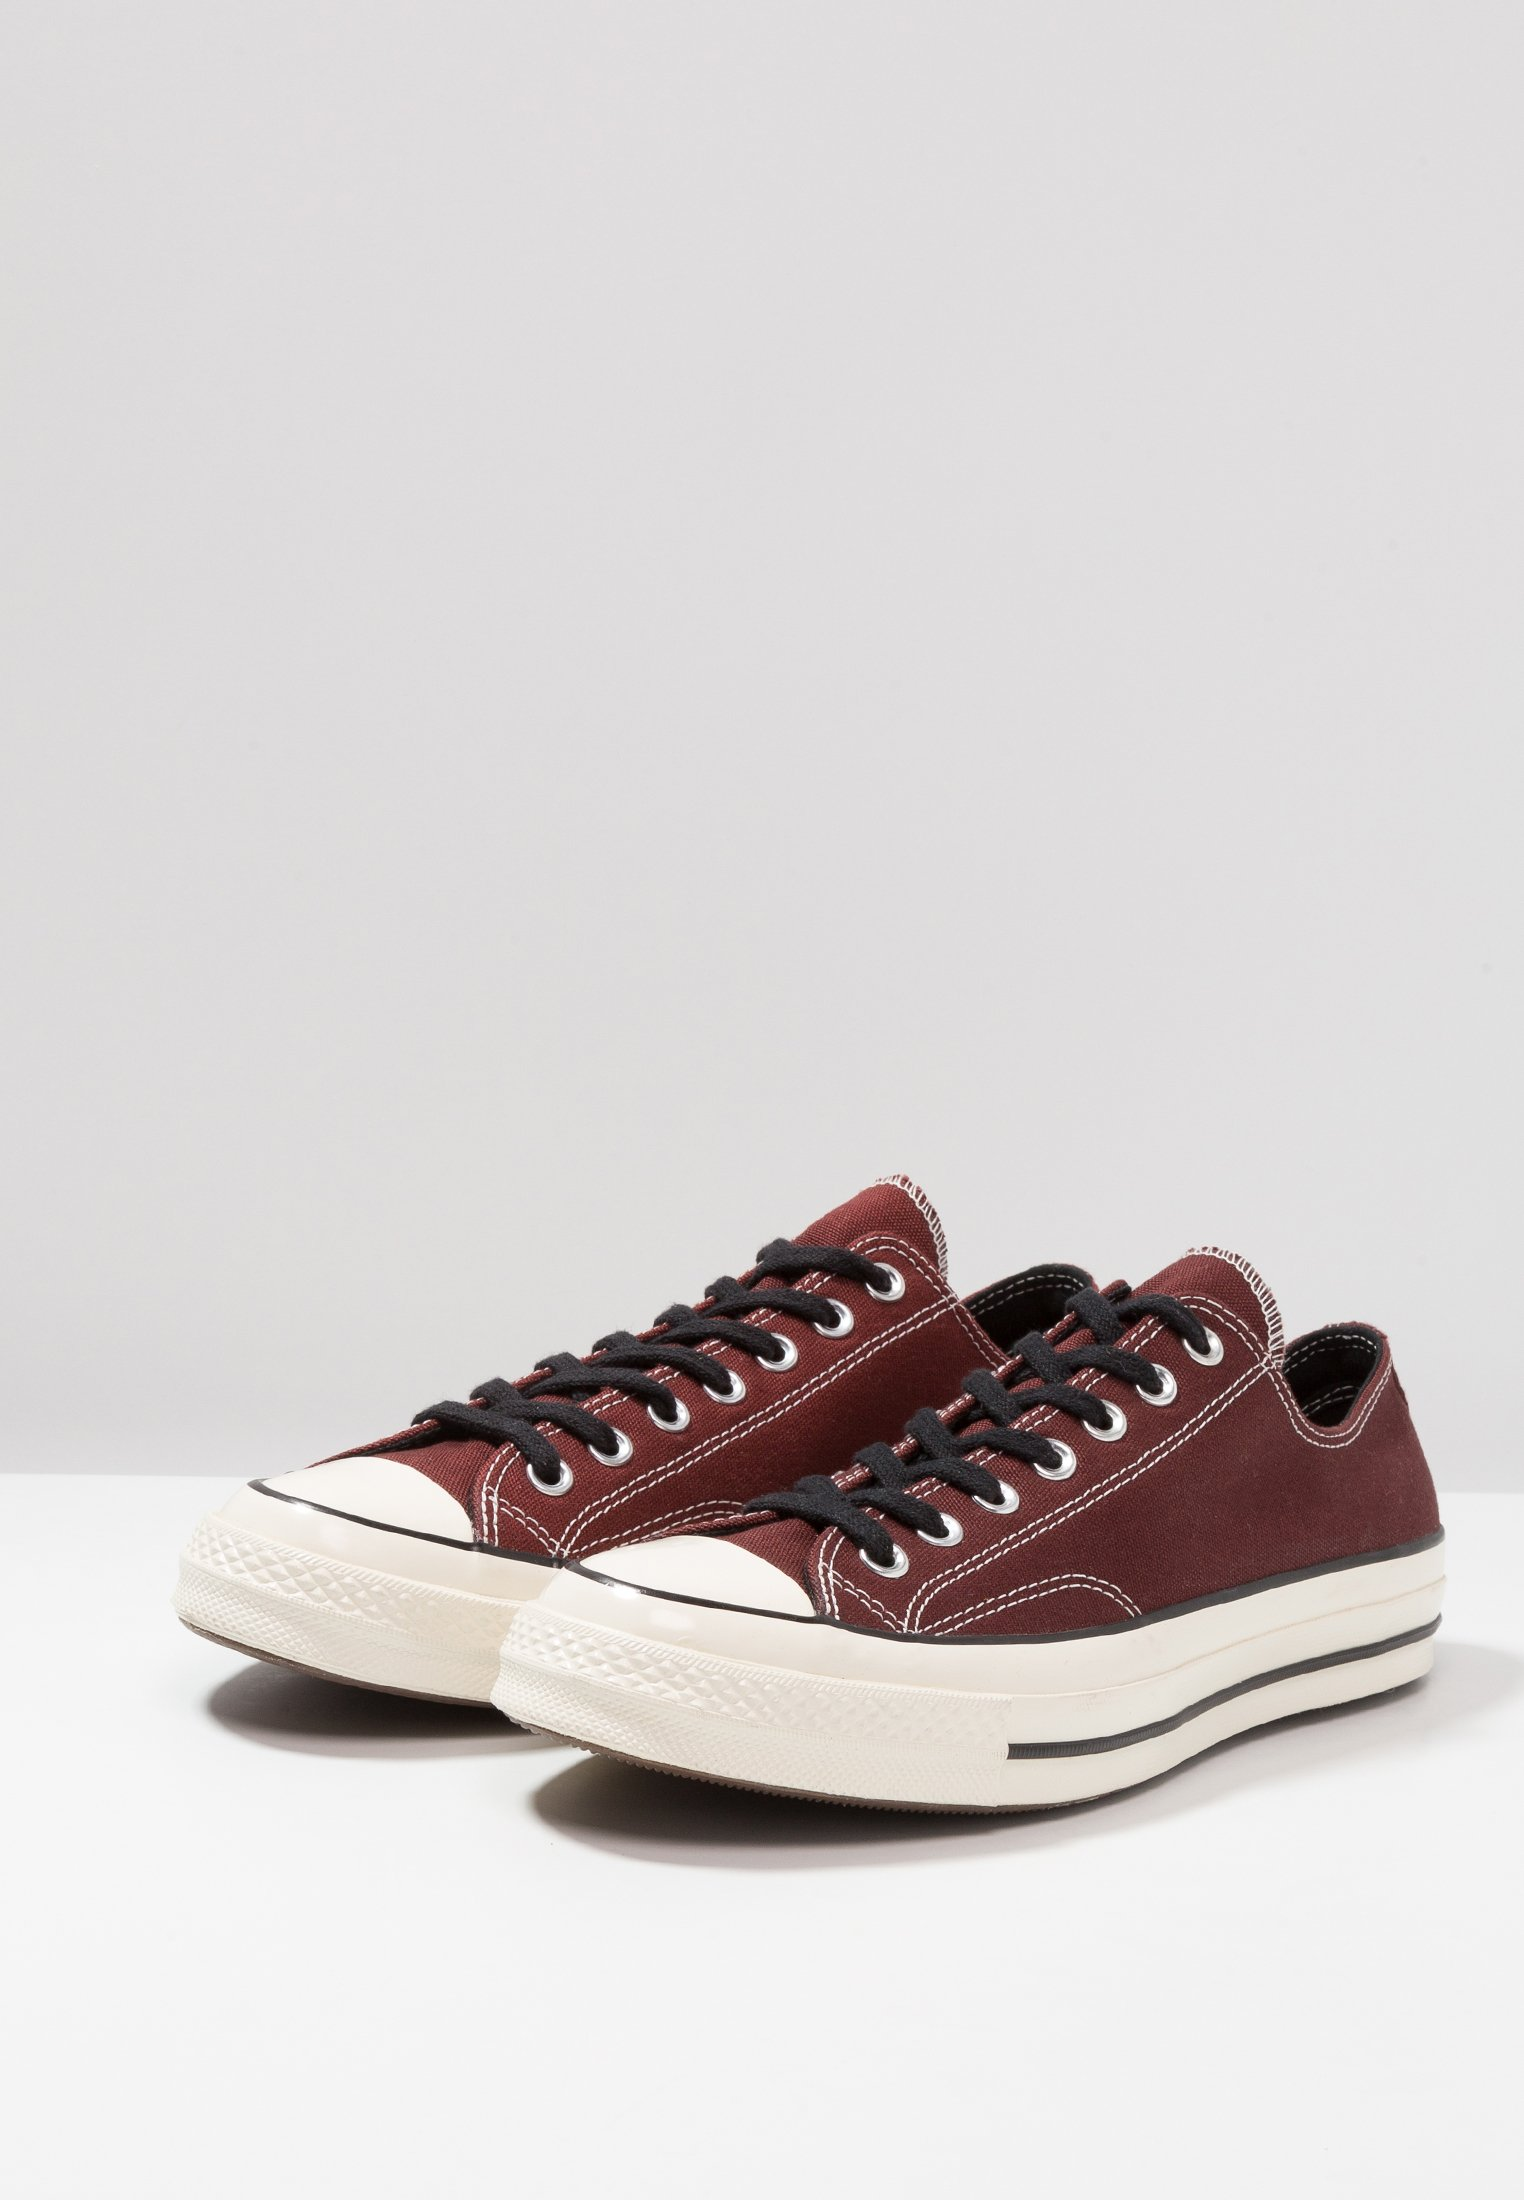 CHUCK TAYLOR ALL STAR 70 OX Sneakers laag barkroot brownblackegret